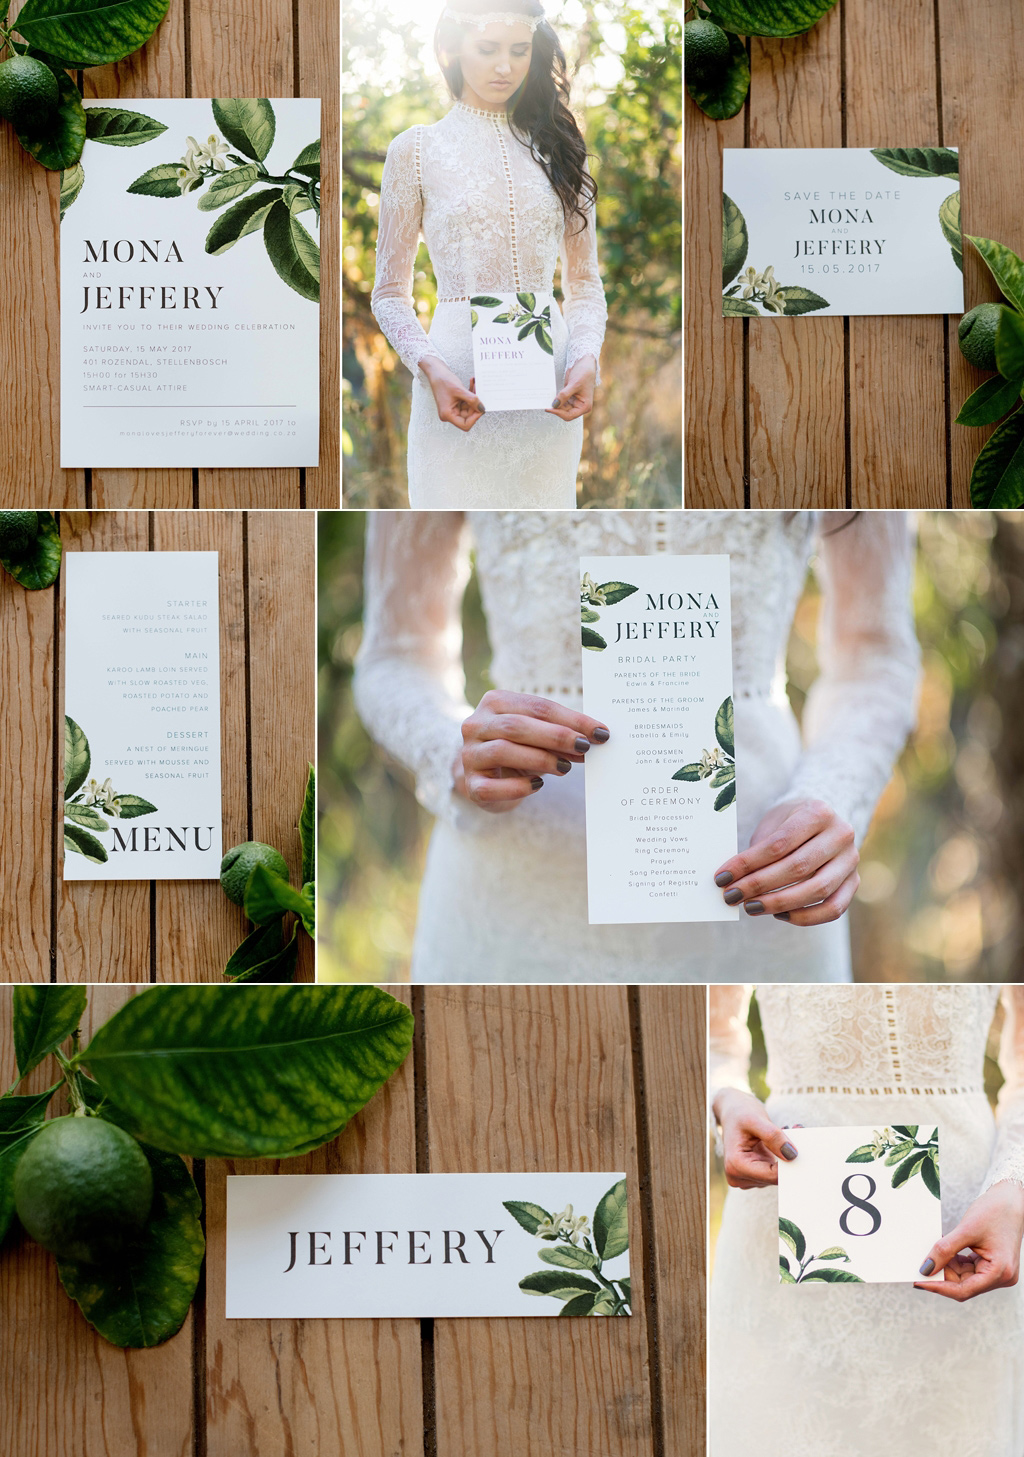 lemon tree inspired stationery and invitation set